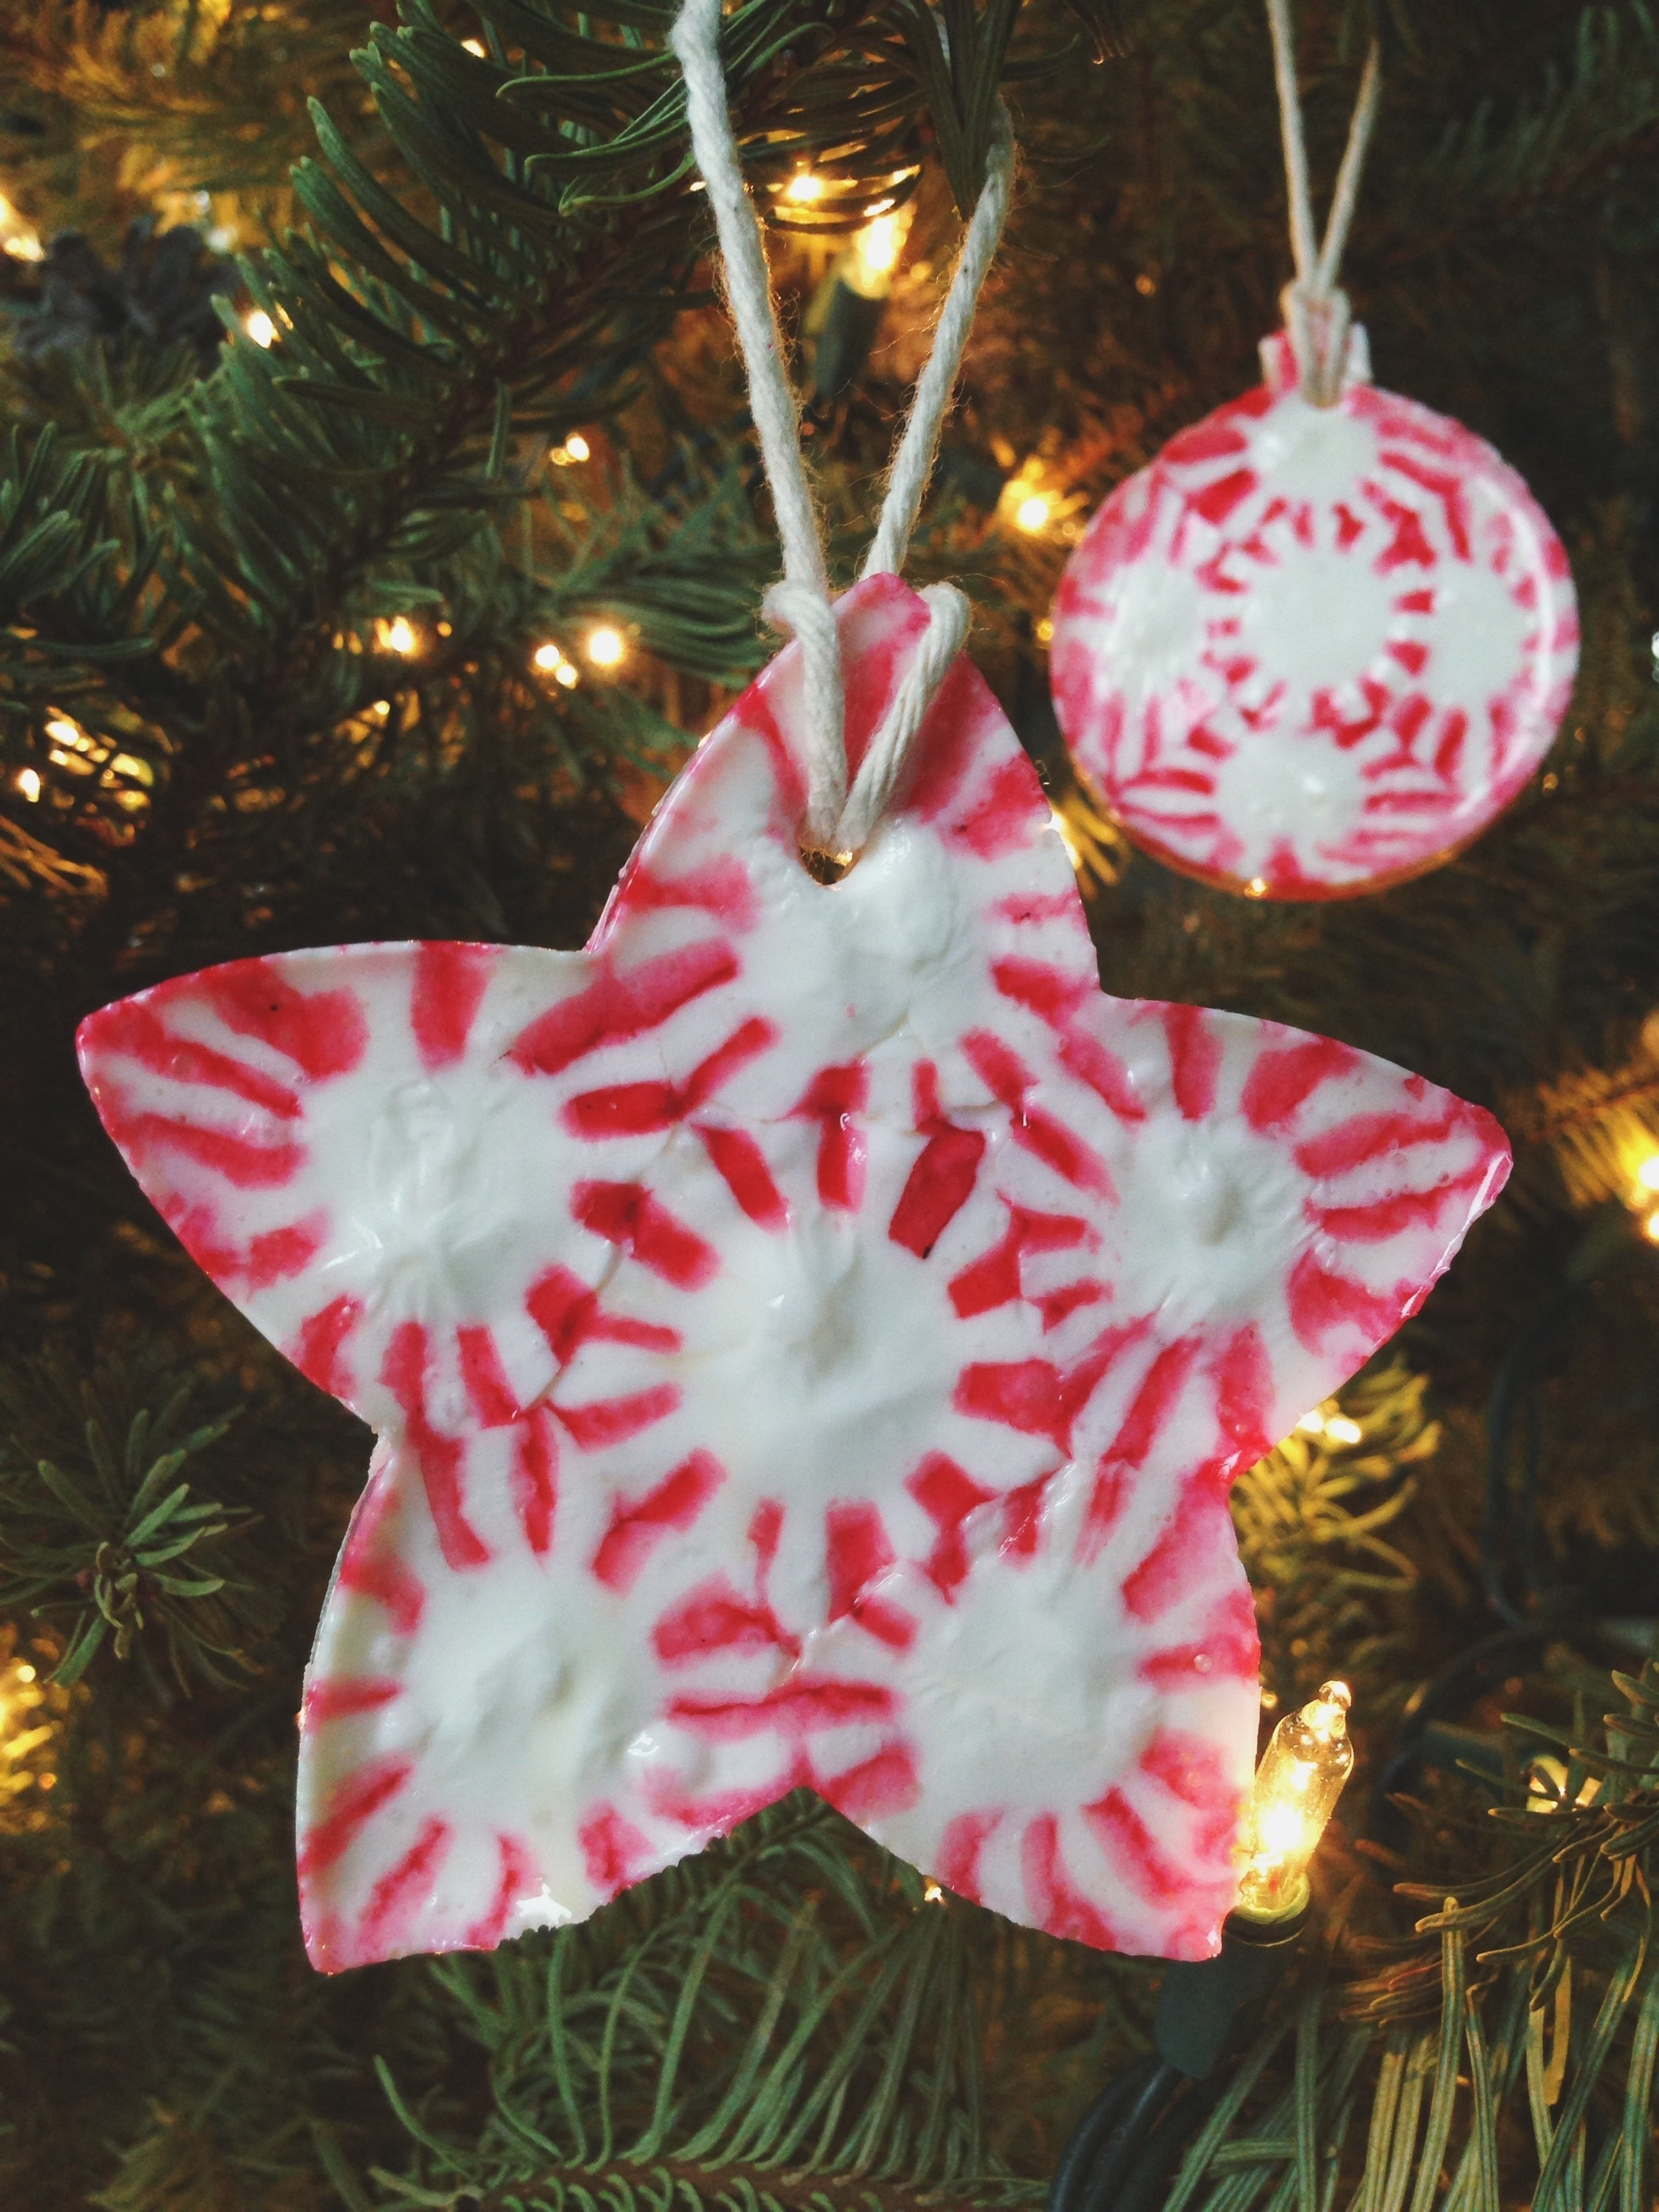 10 Most Recommended Homemade Ornament Ideas For Kids candy christmas ornaments 1 2020